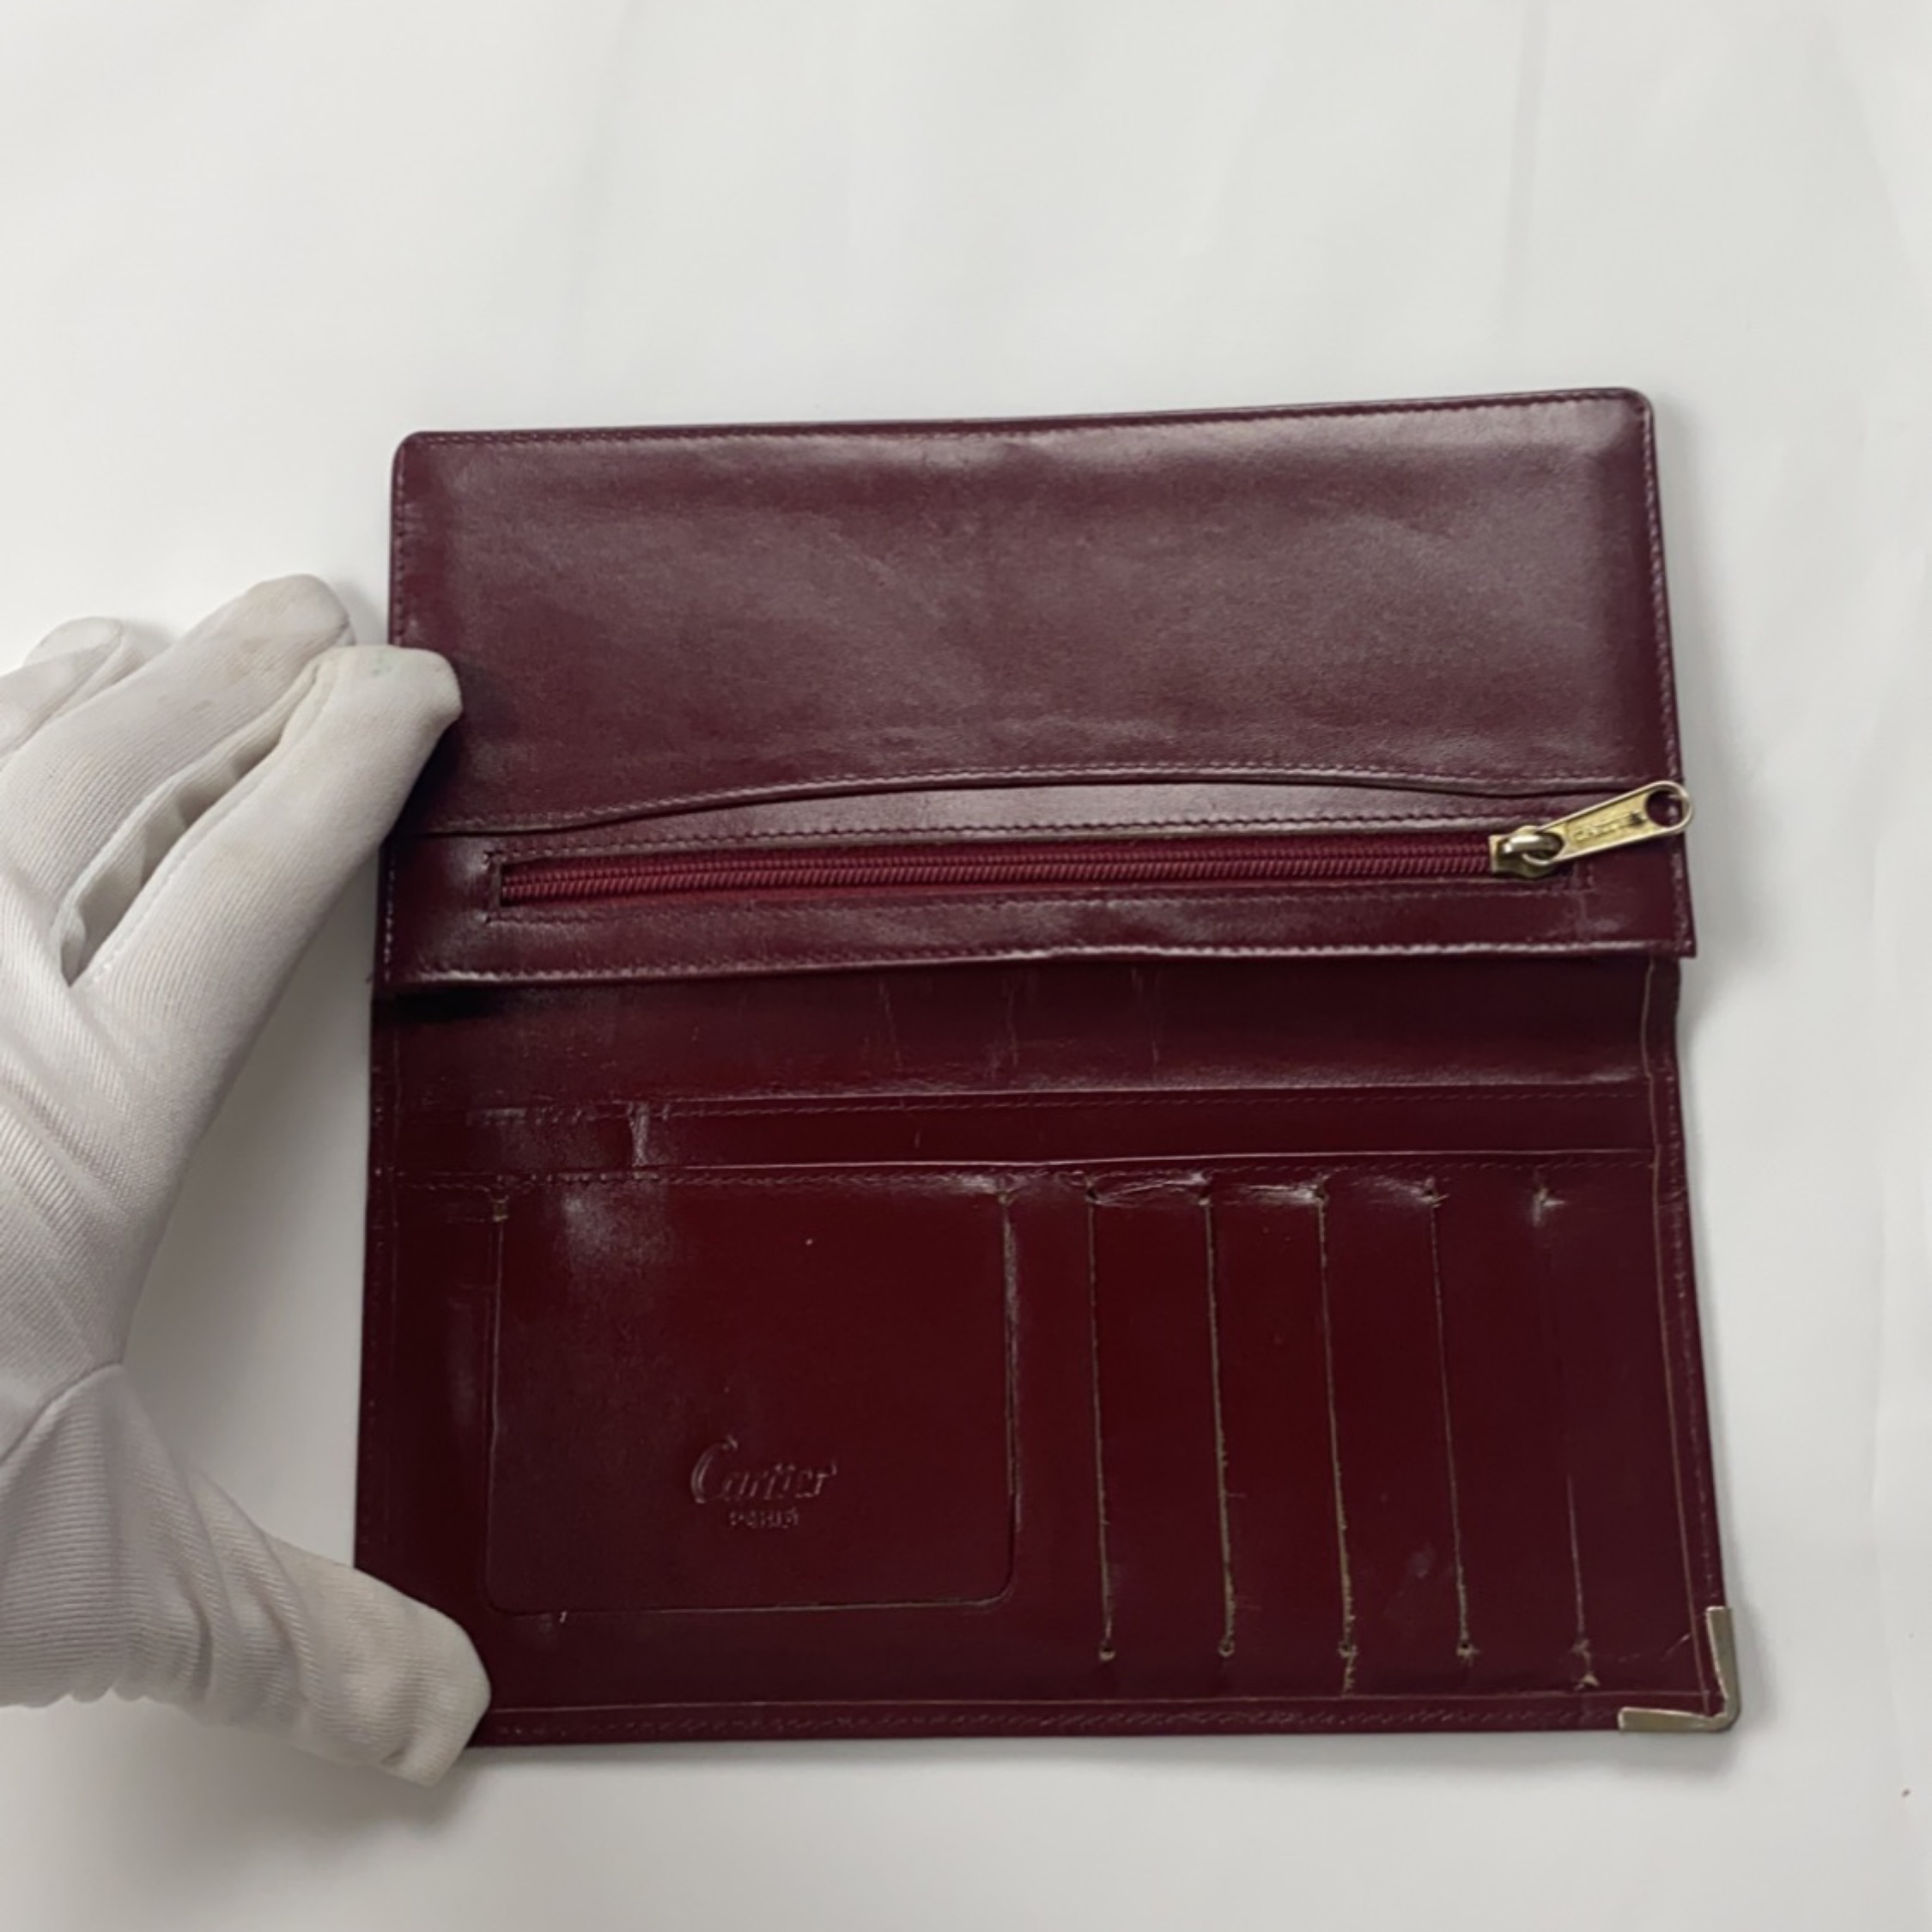 Cartier Vintage Red Long Wallet